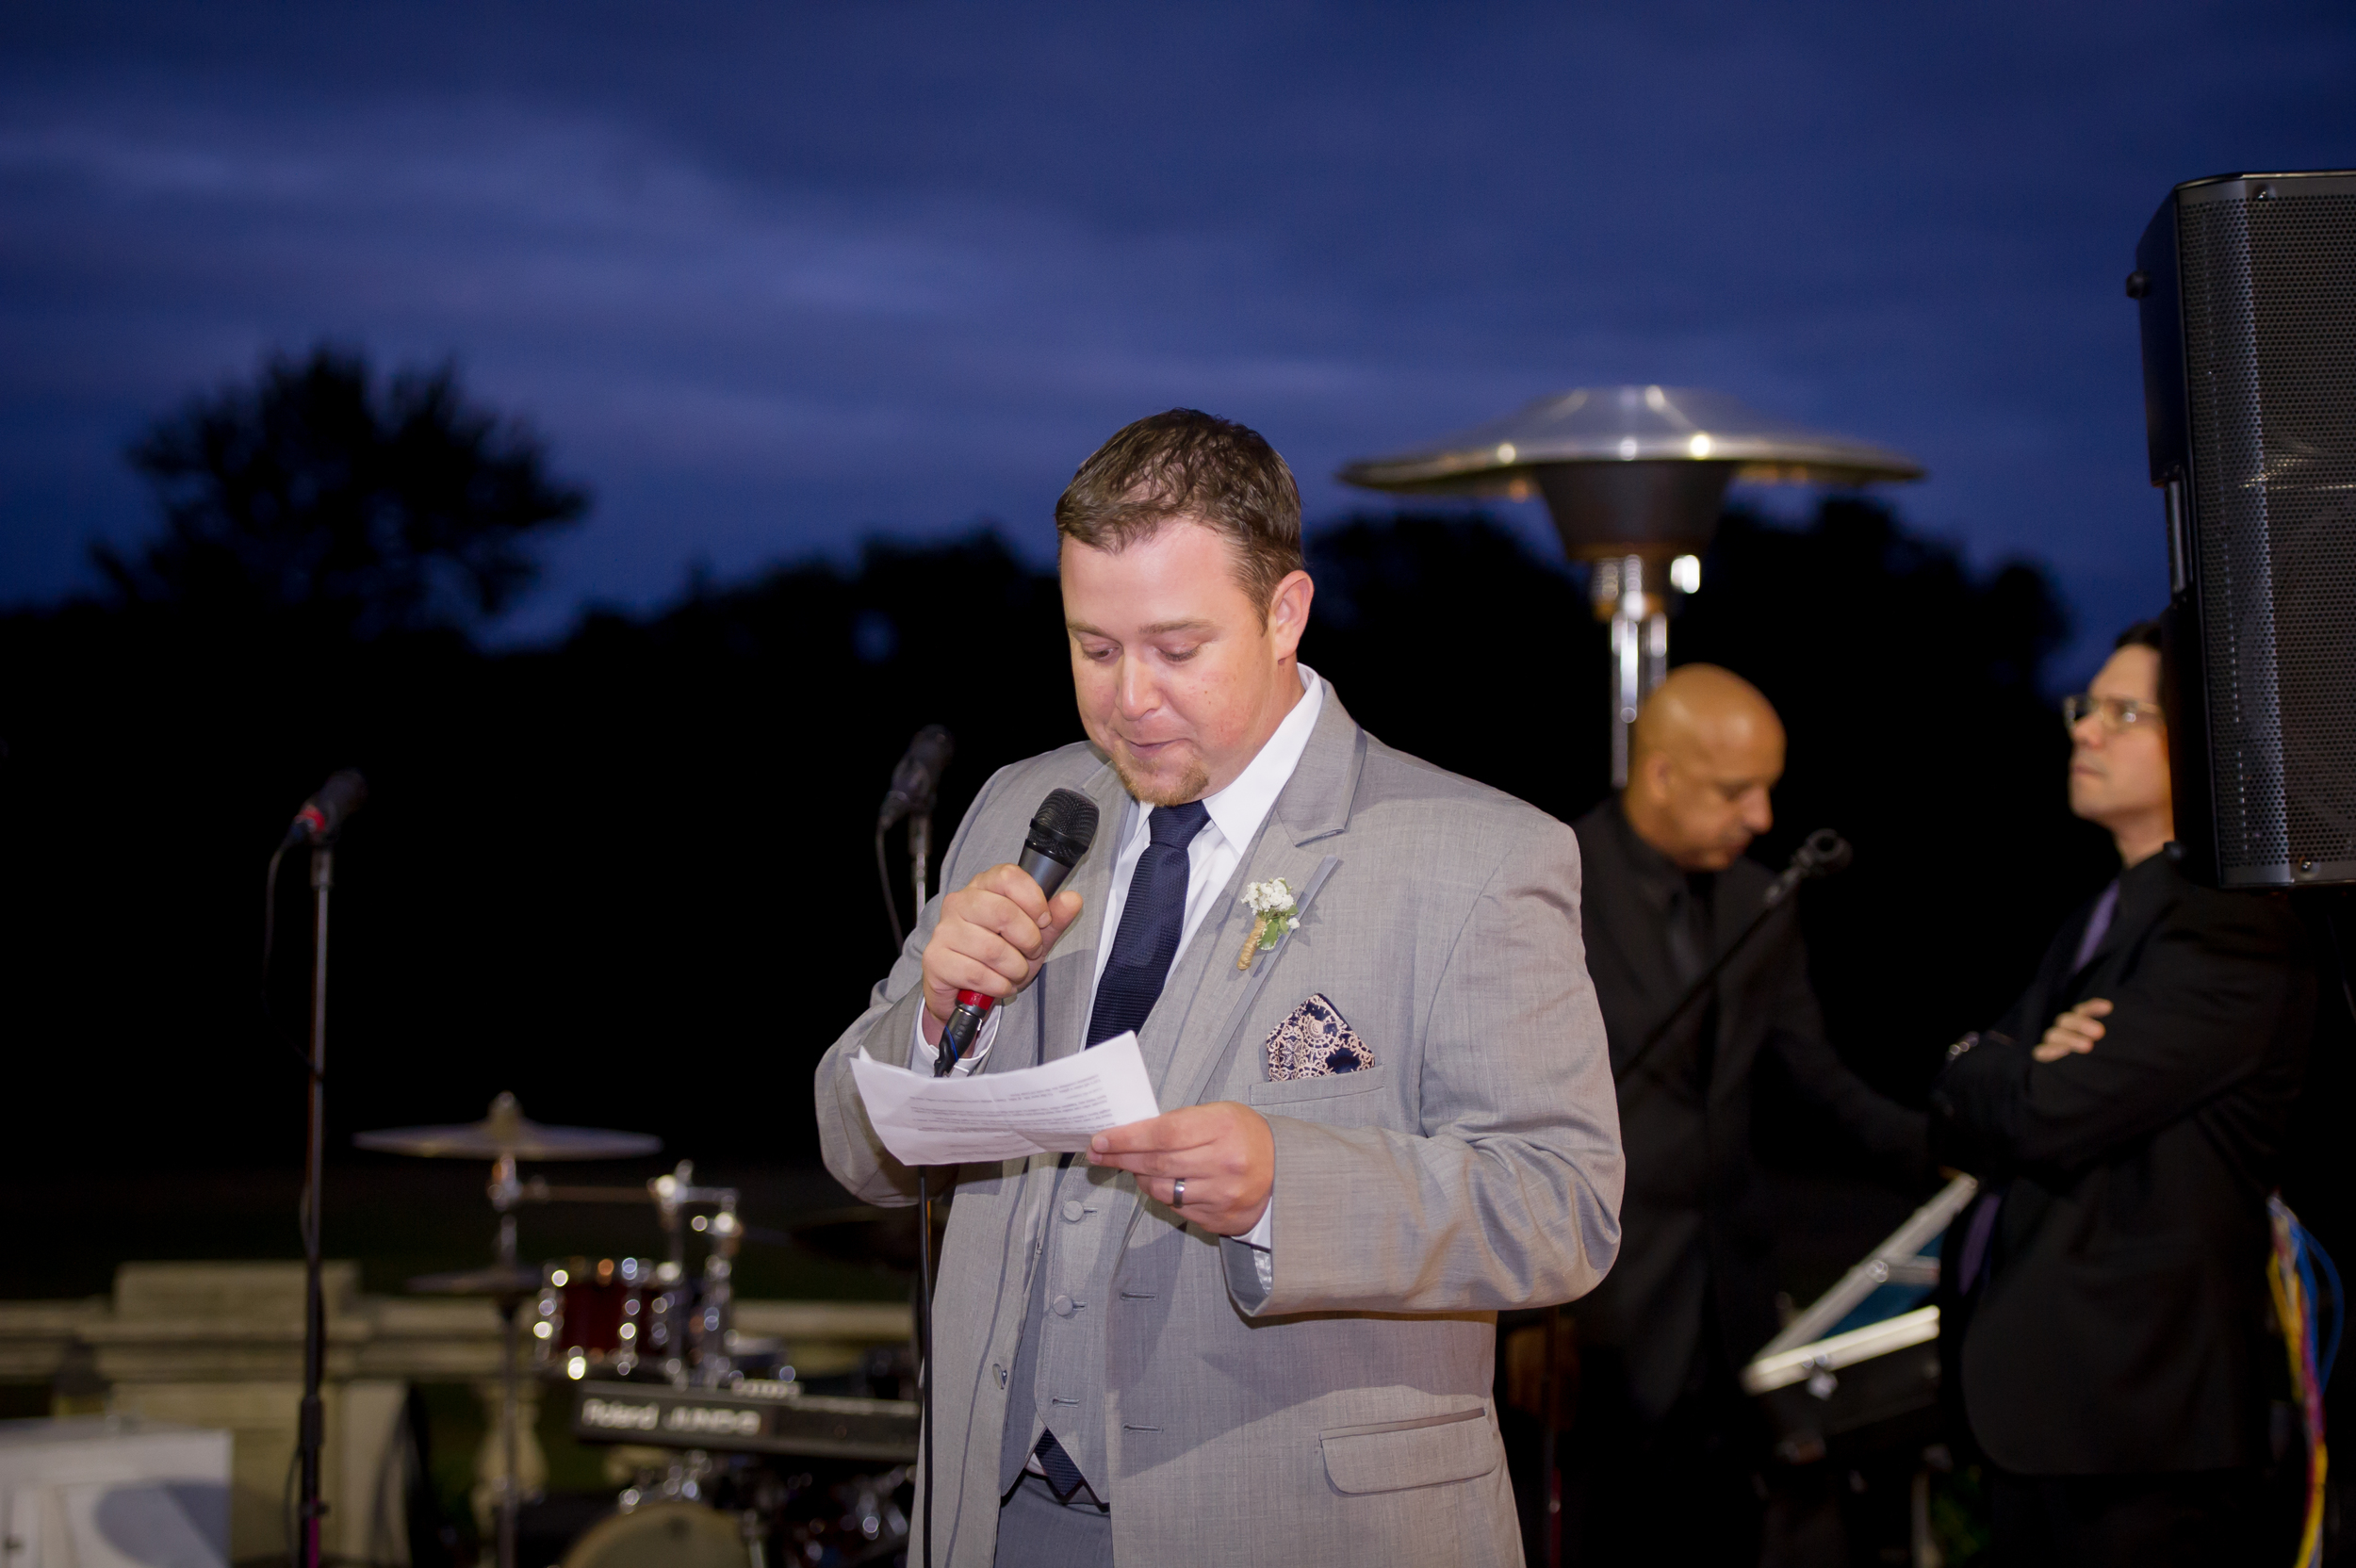 waveny_house_wedding_New_canaan_CT_Amy_Champagne_Events1016.jpg